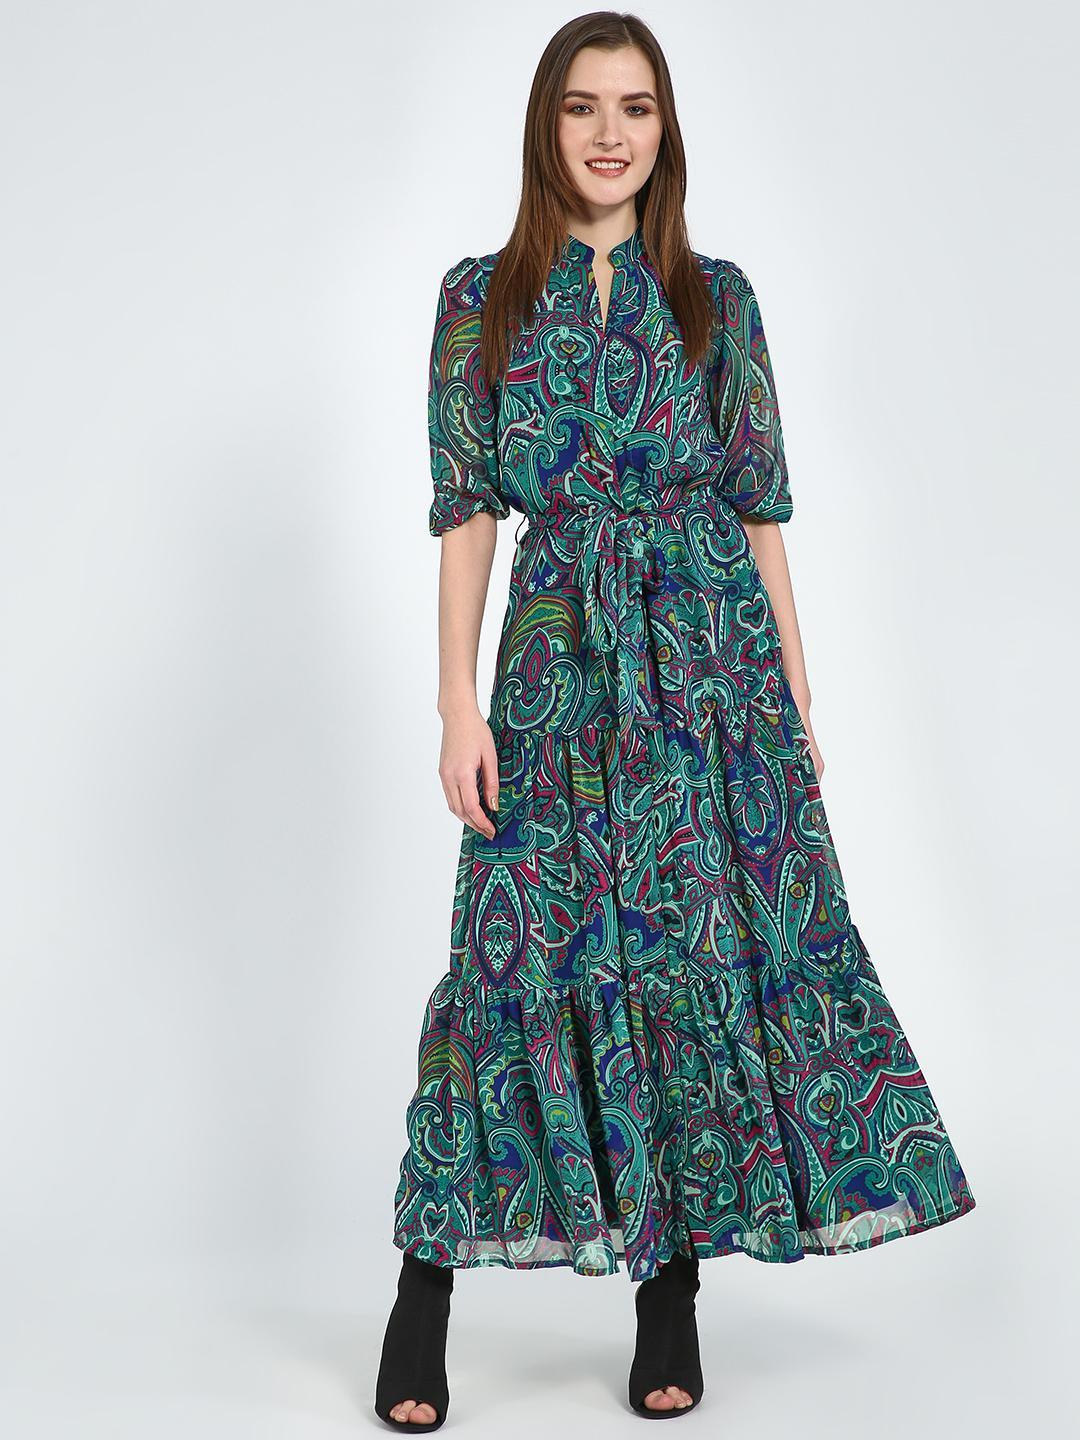 Femella Green Paisley Print Tie-Knot Maxi Dress 1